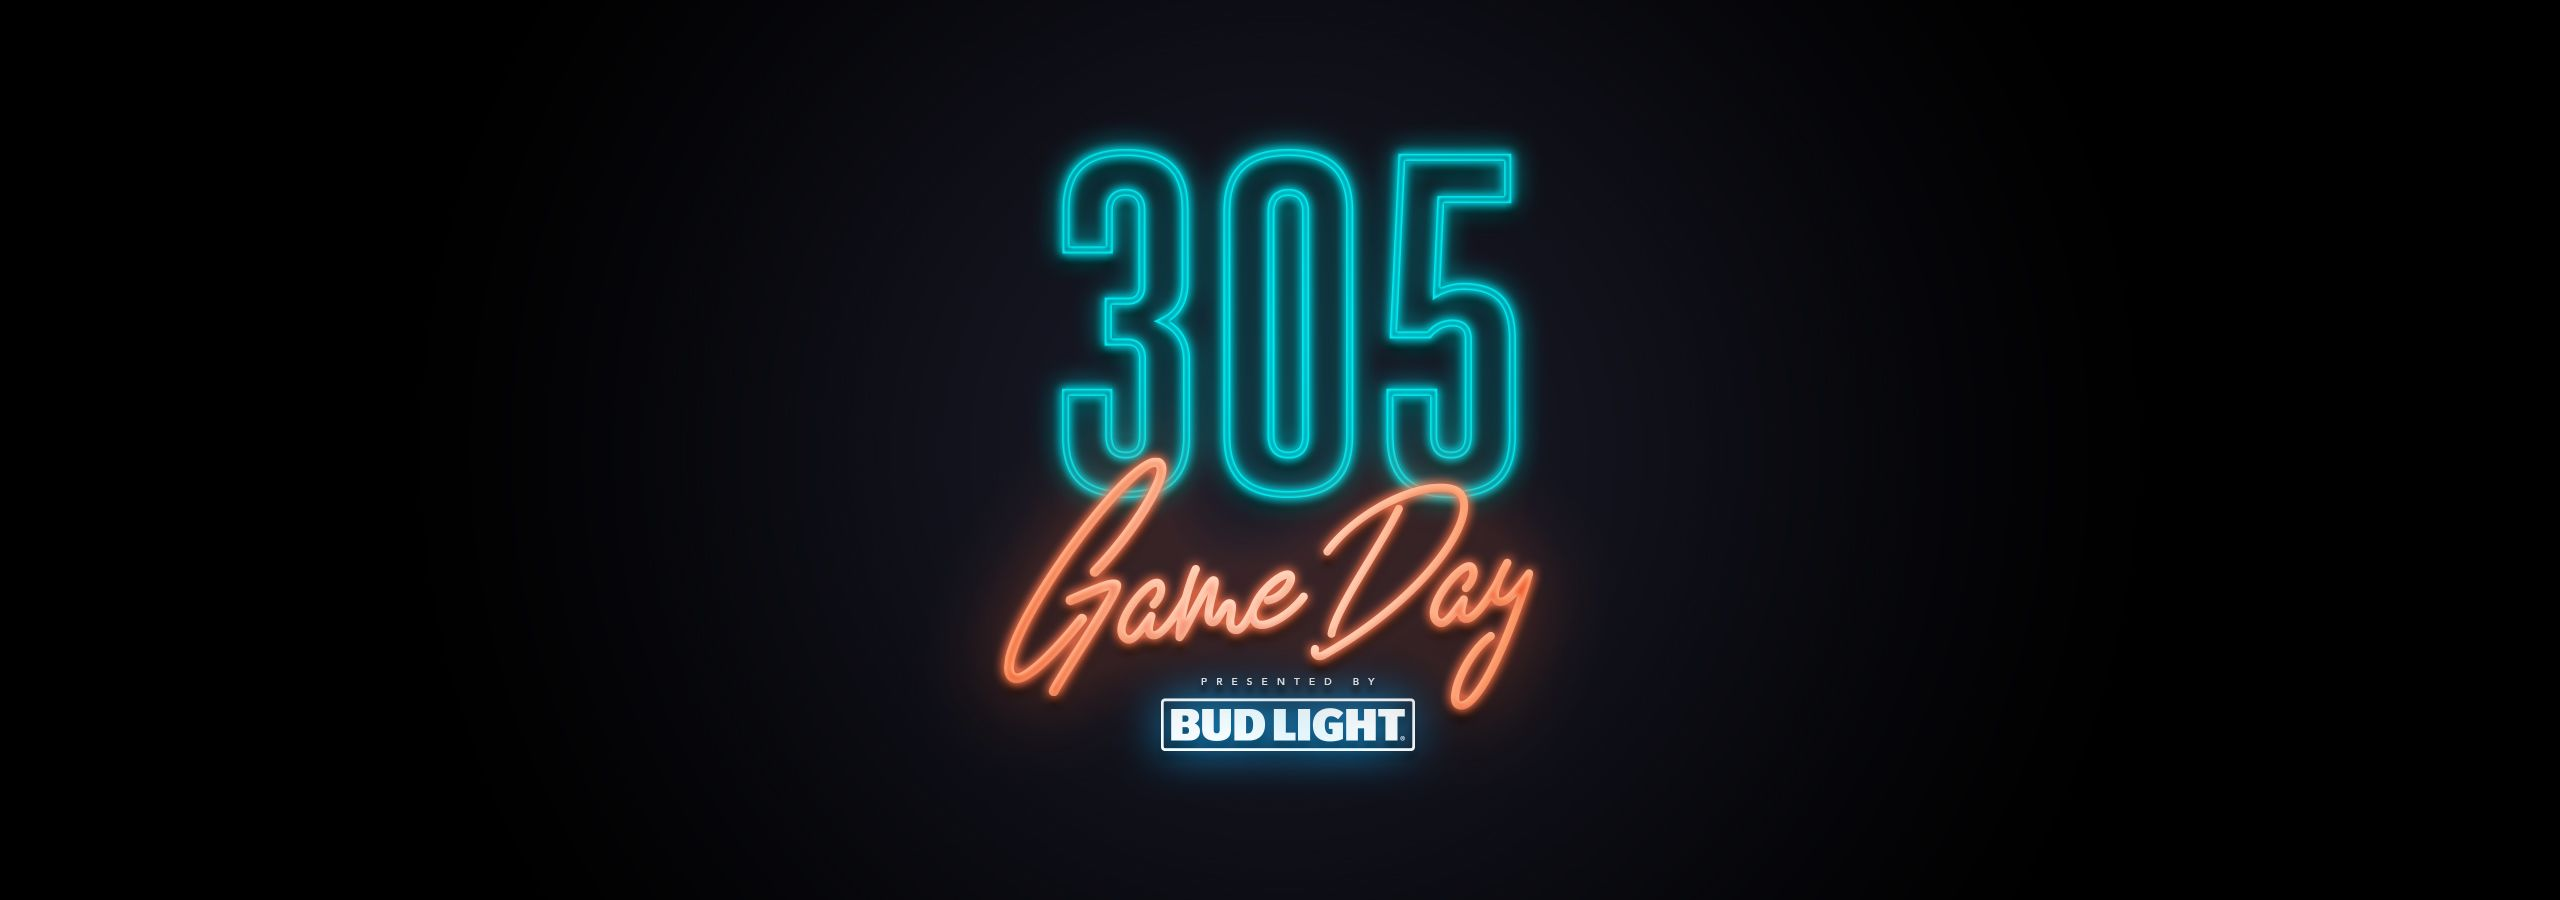 Graphic: Header - 305 Gameday Presented By Bud Light